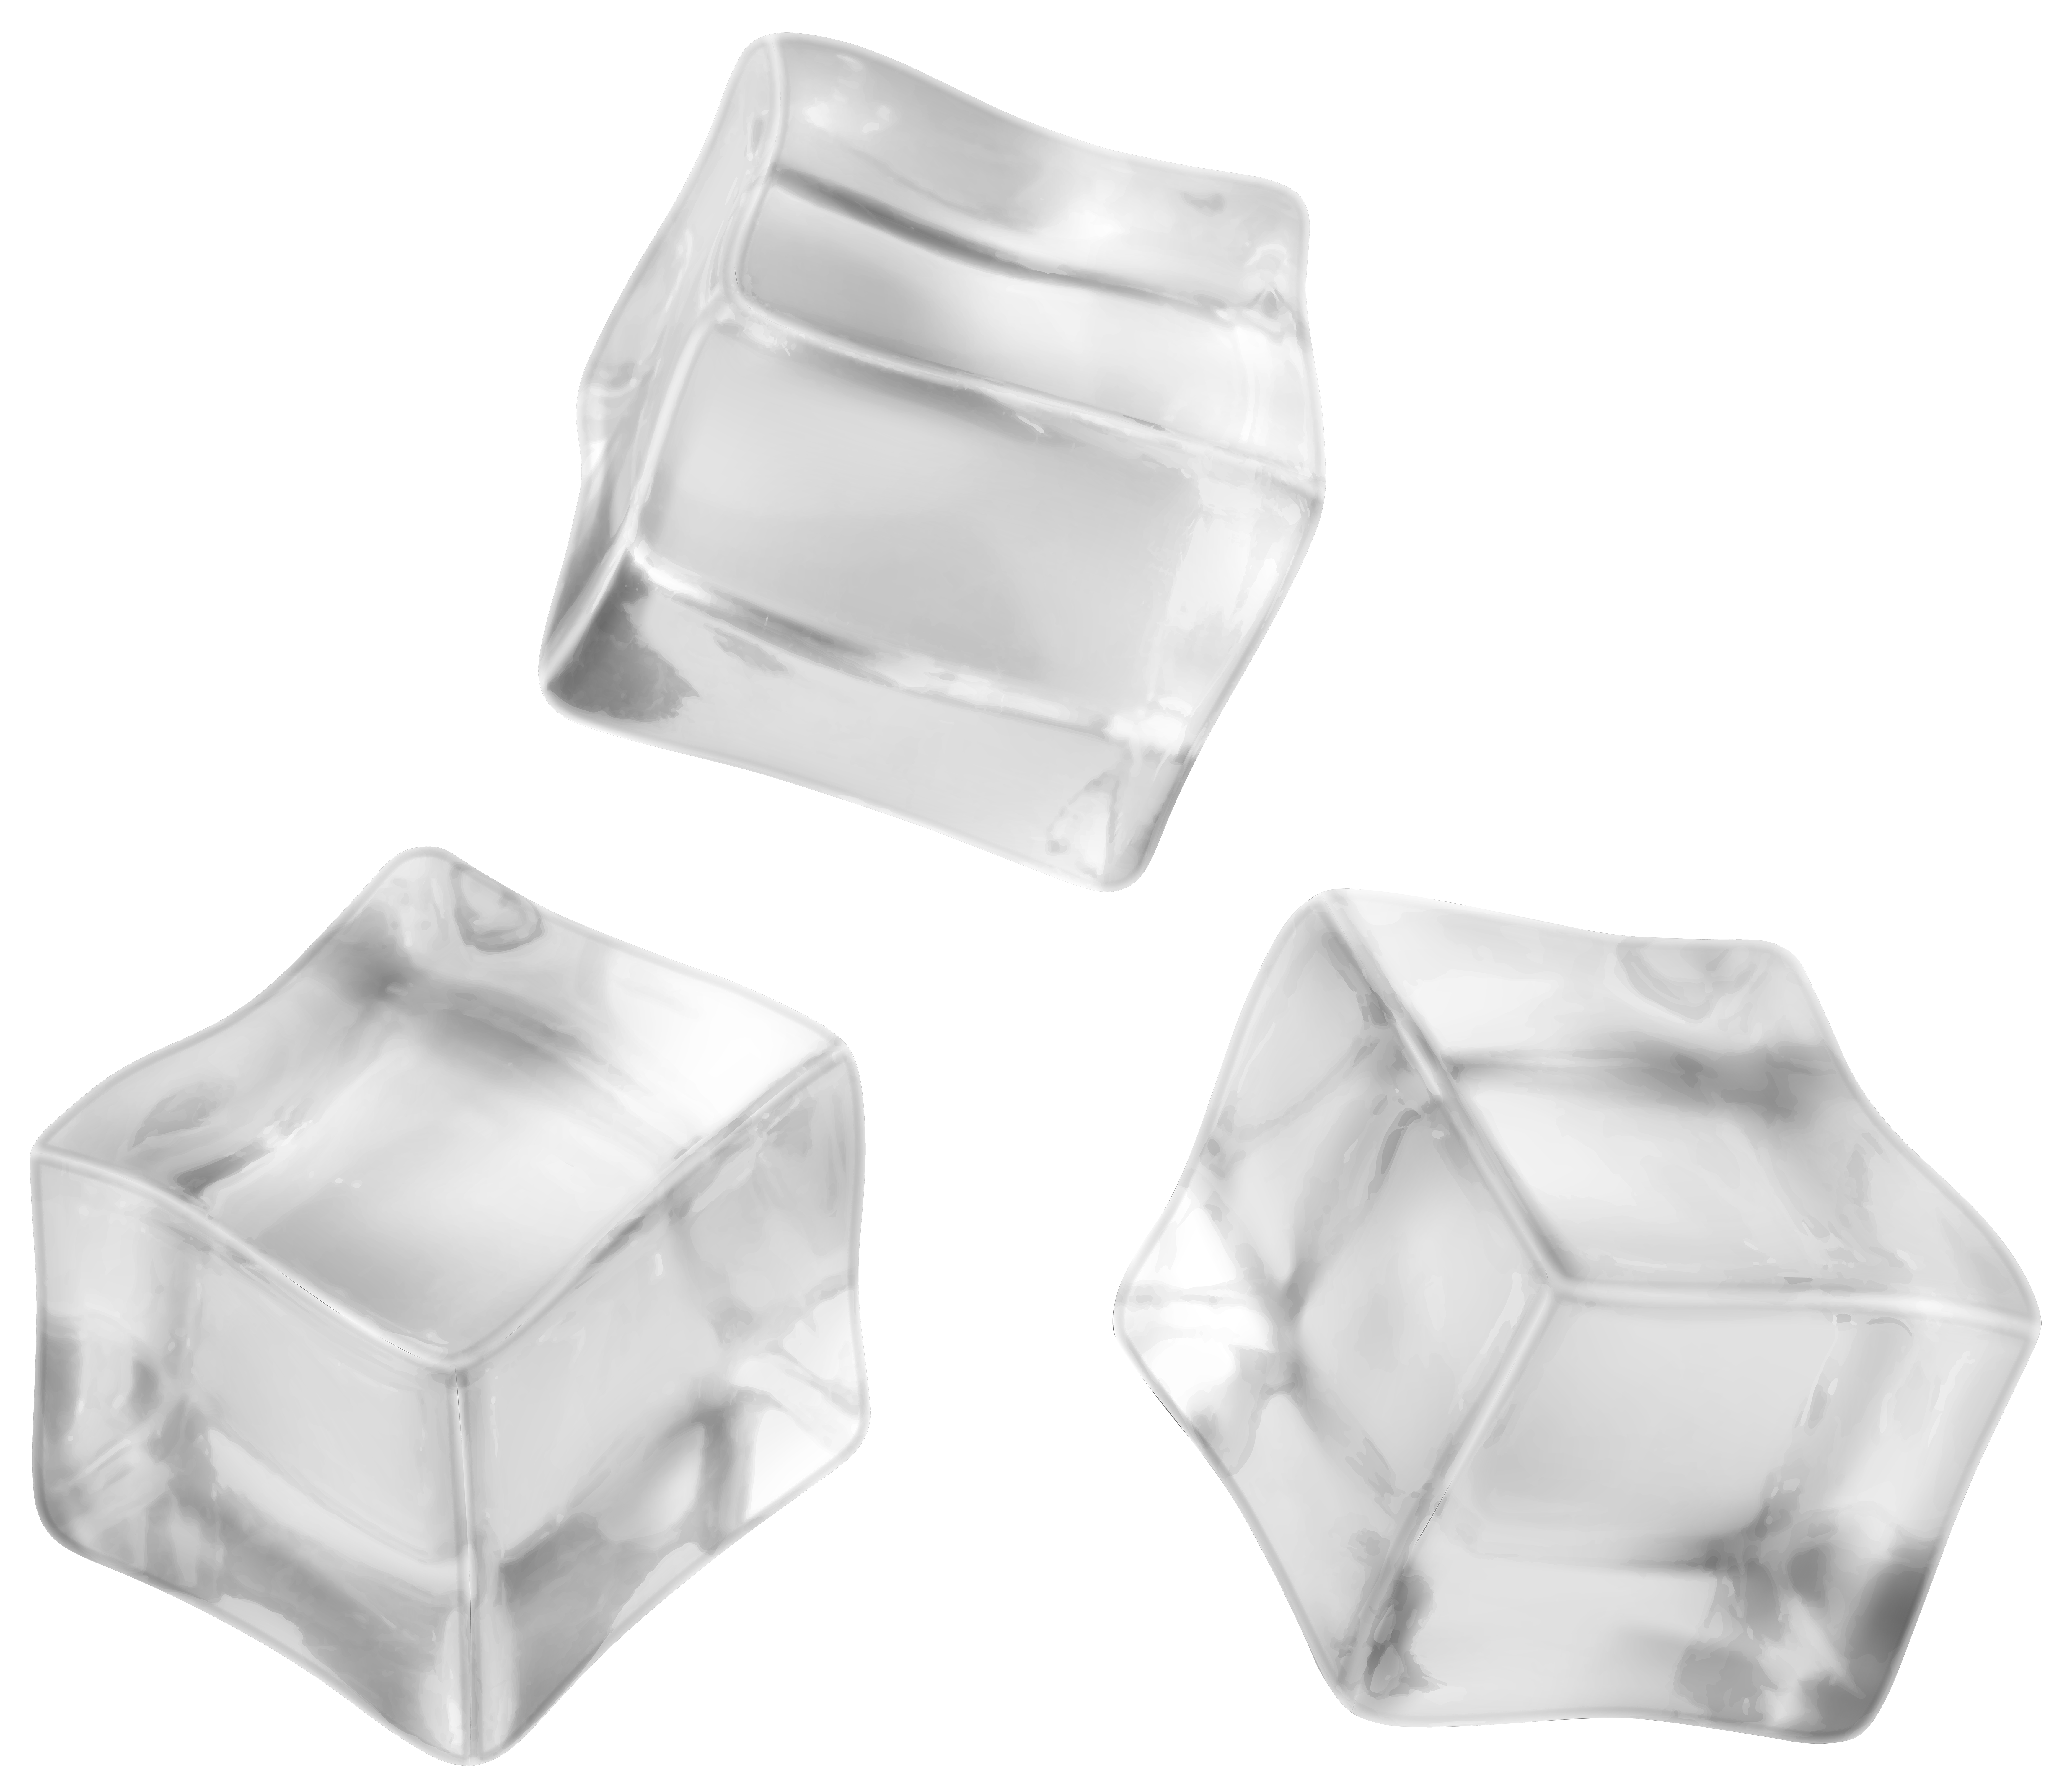 vector freeuse library Ice cubes clipart black and white. Cube png clip art